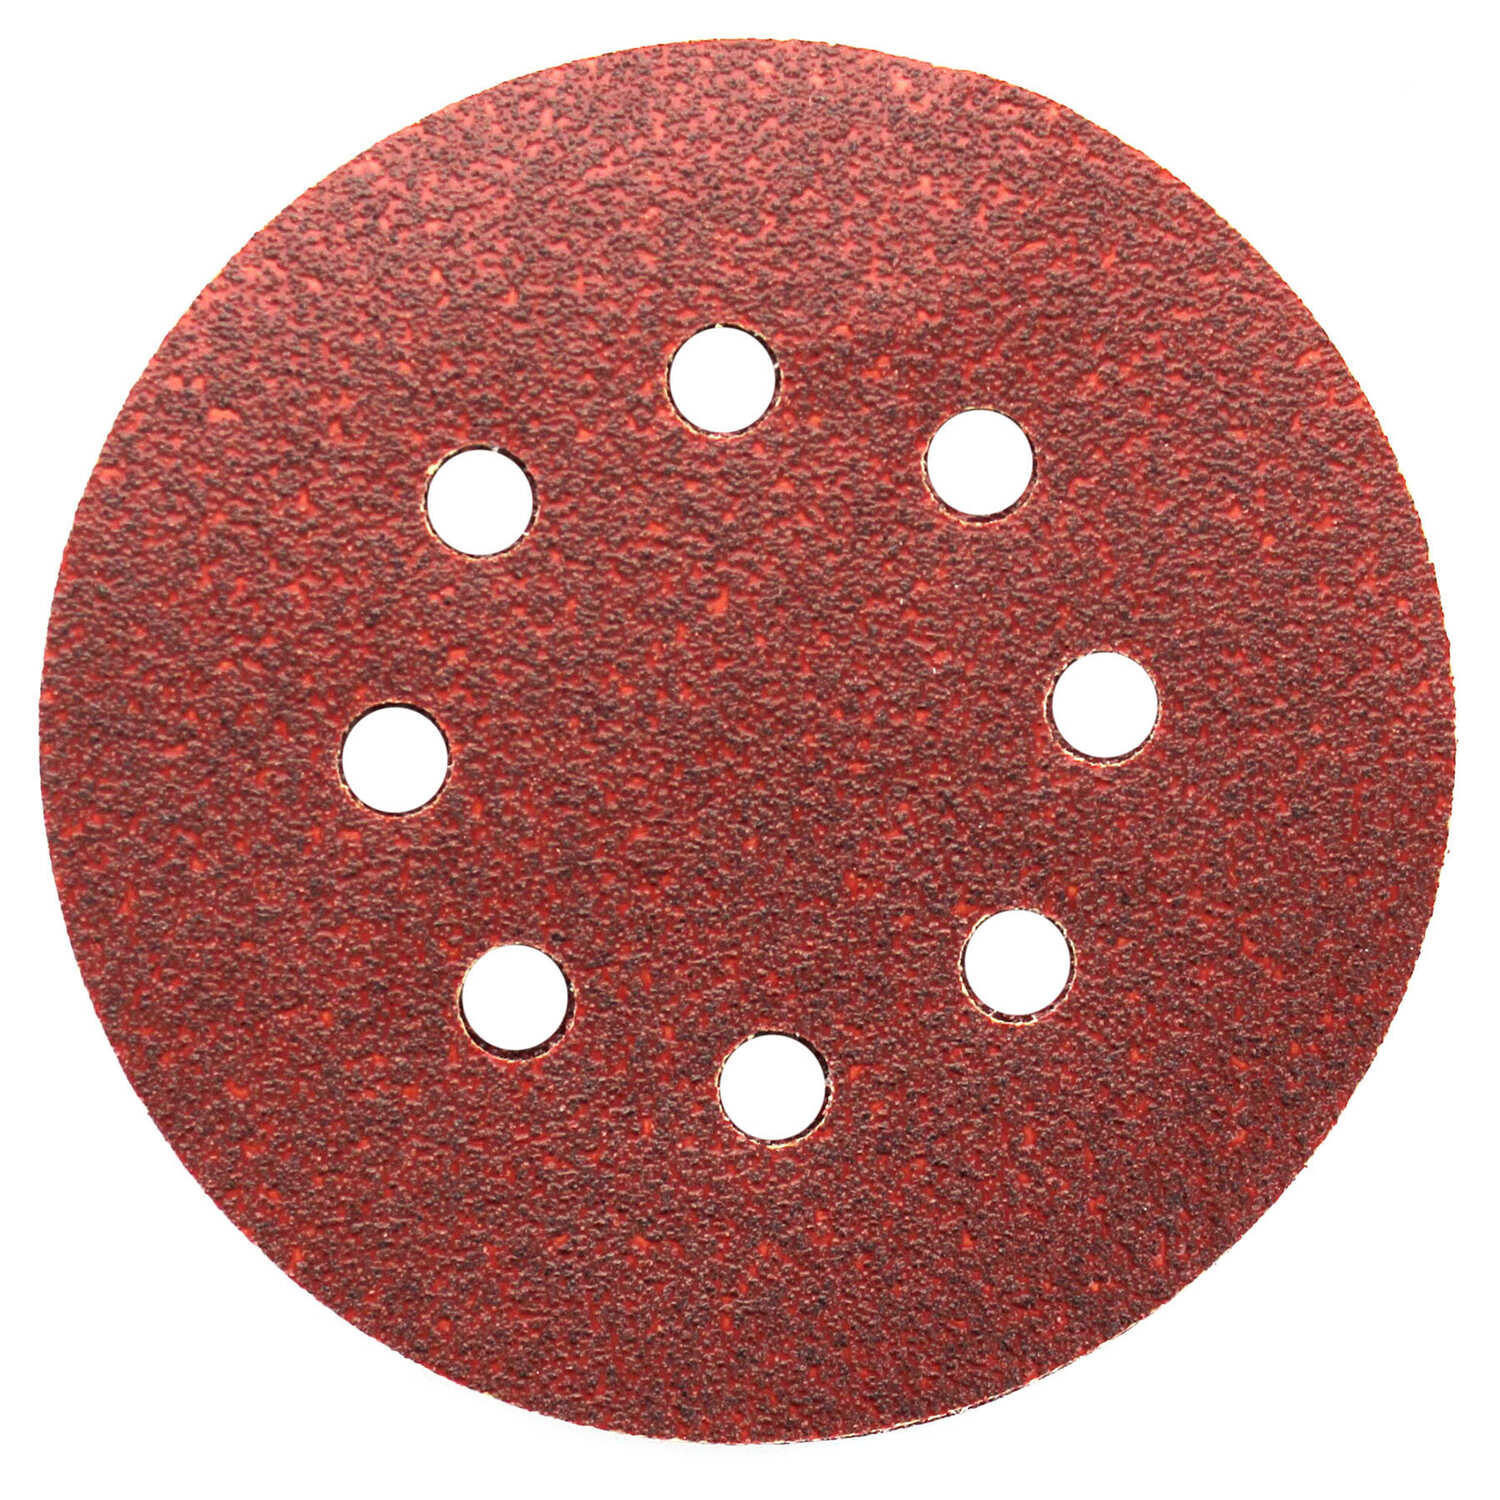 Ace  5 in. Aluminum Oxide  Hook and Loop  Sanding Disc  60 Grit Coarse  15 pk